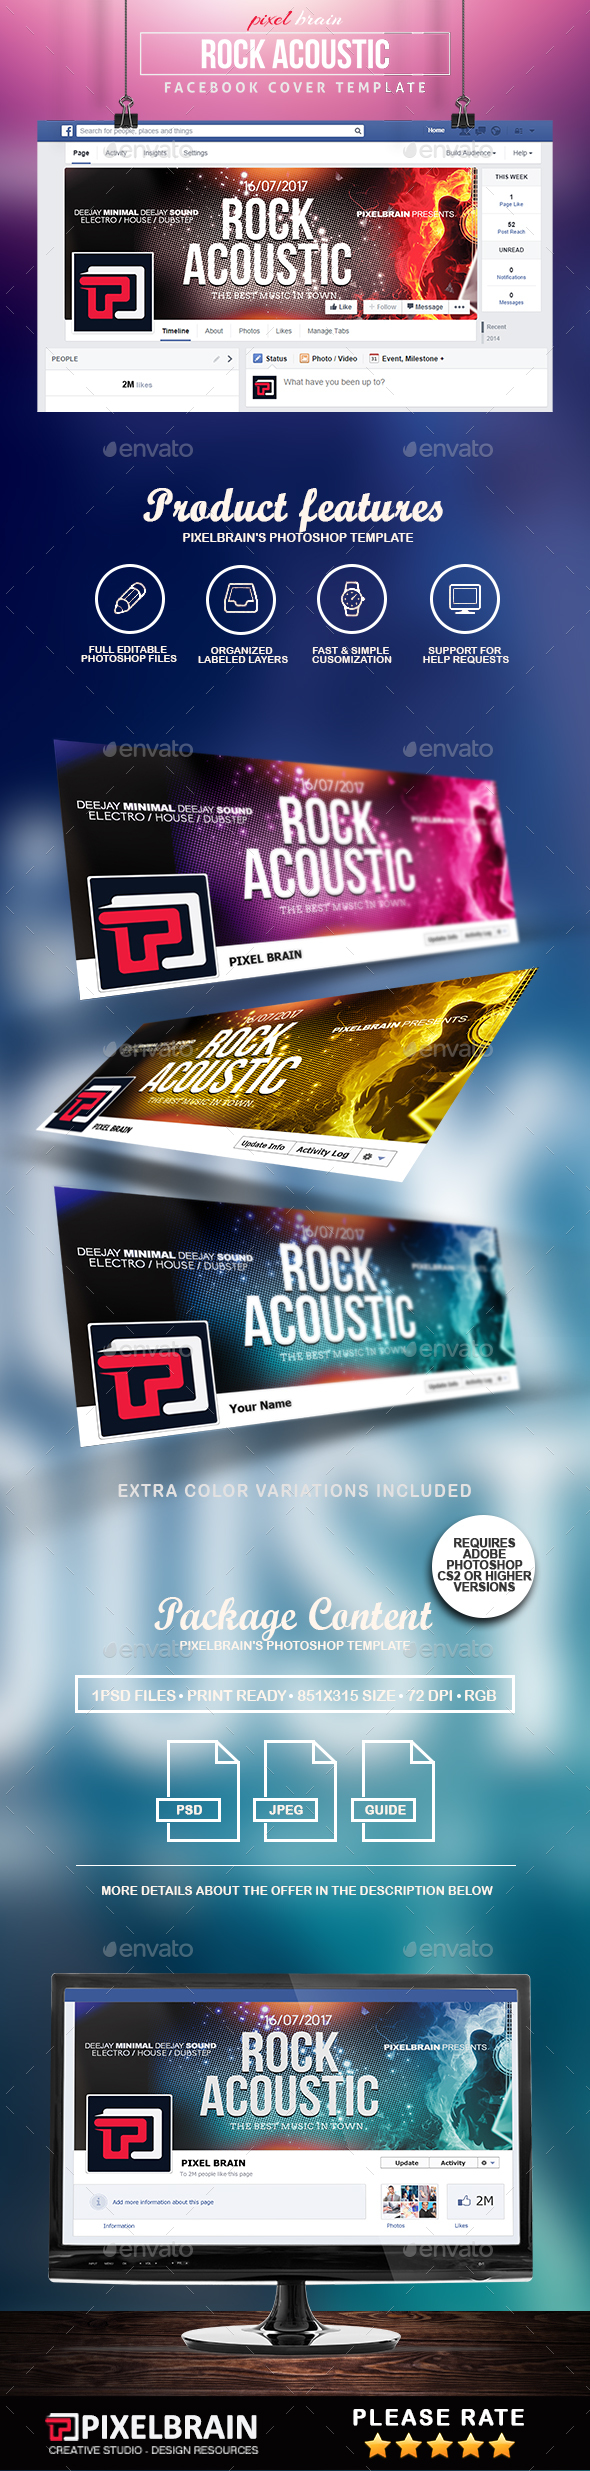 Rock Acoustic Facebook Cover Template - Facebook Timeline Covers Social Media